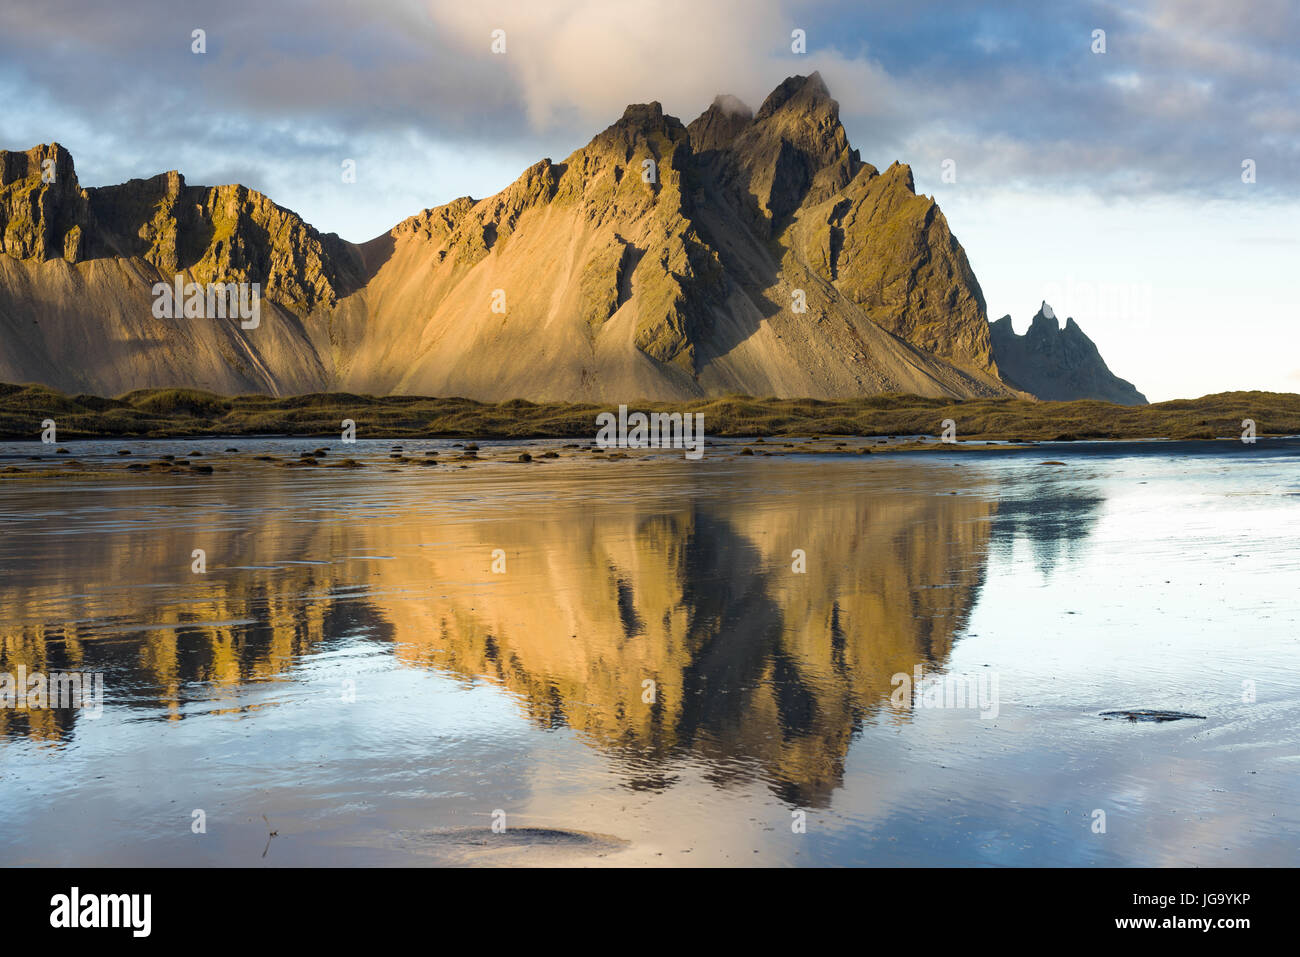 Stokksnes and Vestrahorn mountains in late afternoon light reflected in shallow water, Iceland Stock Photo